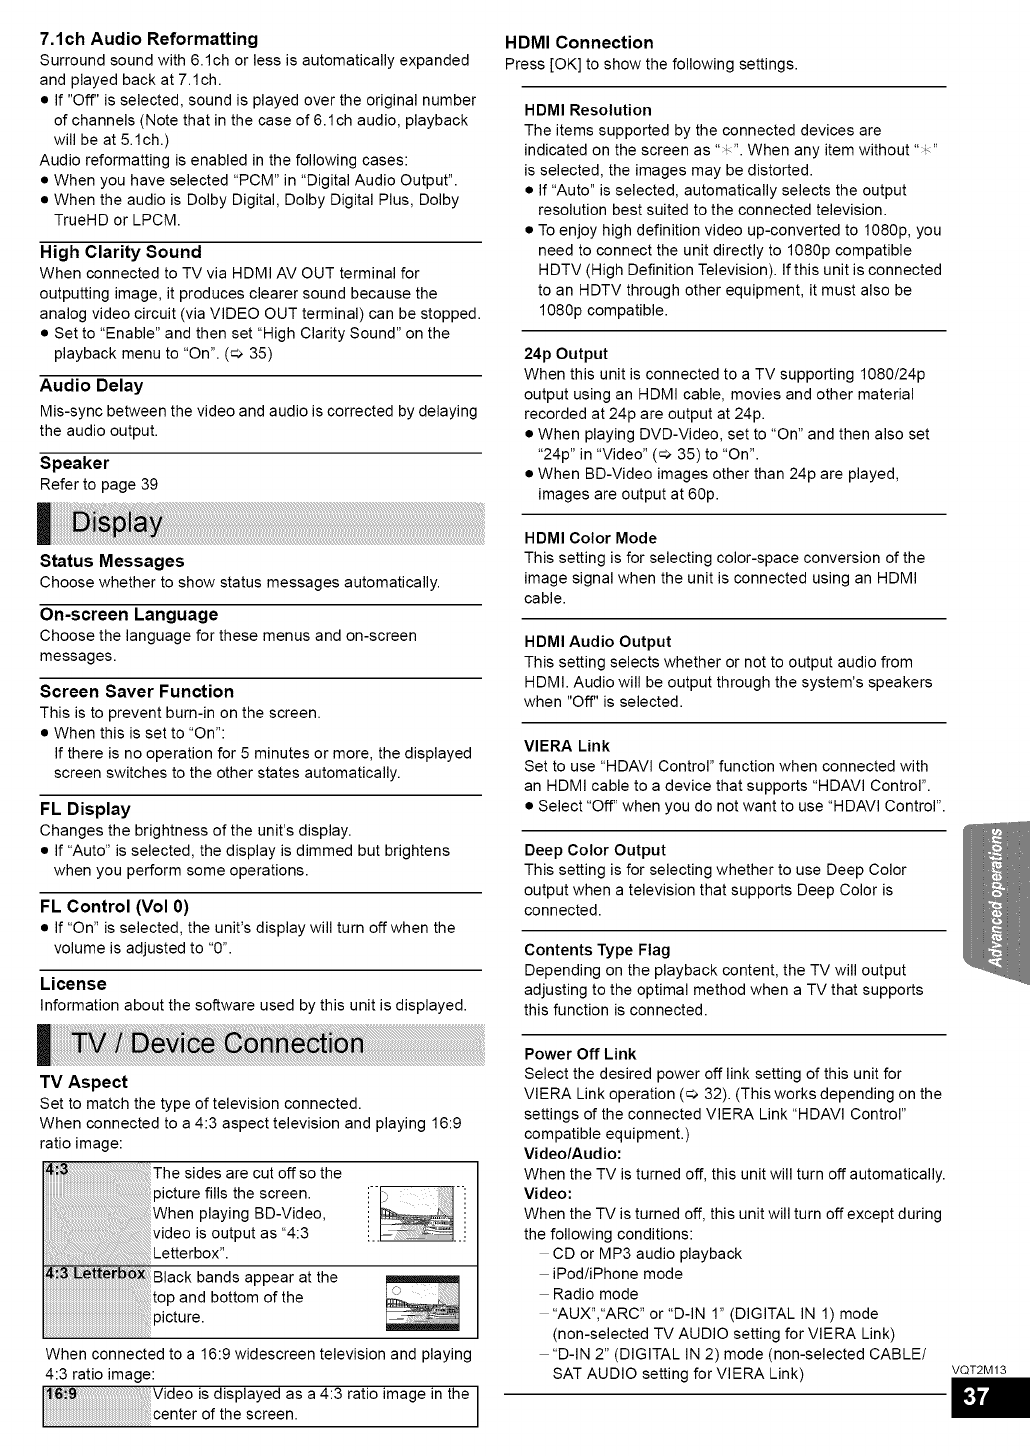 Page 37 of Panasonic Home Theater System SC-BT330 User Guide